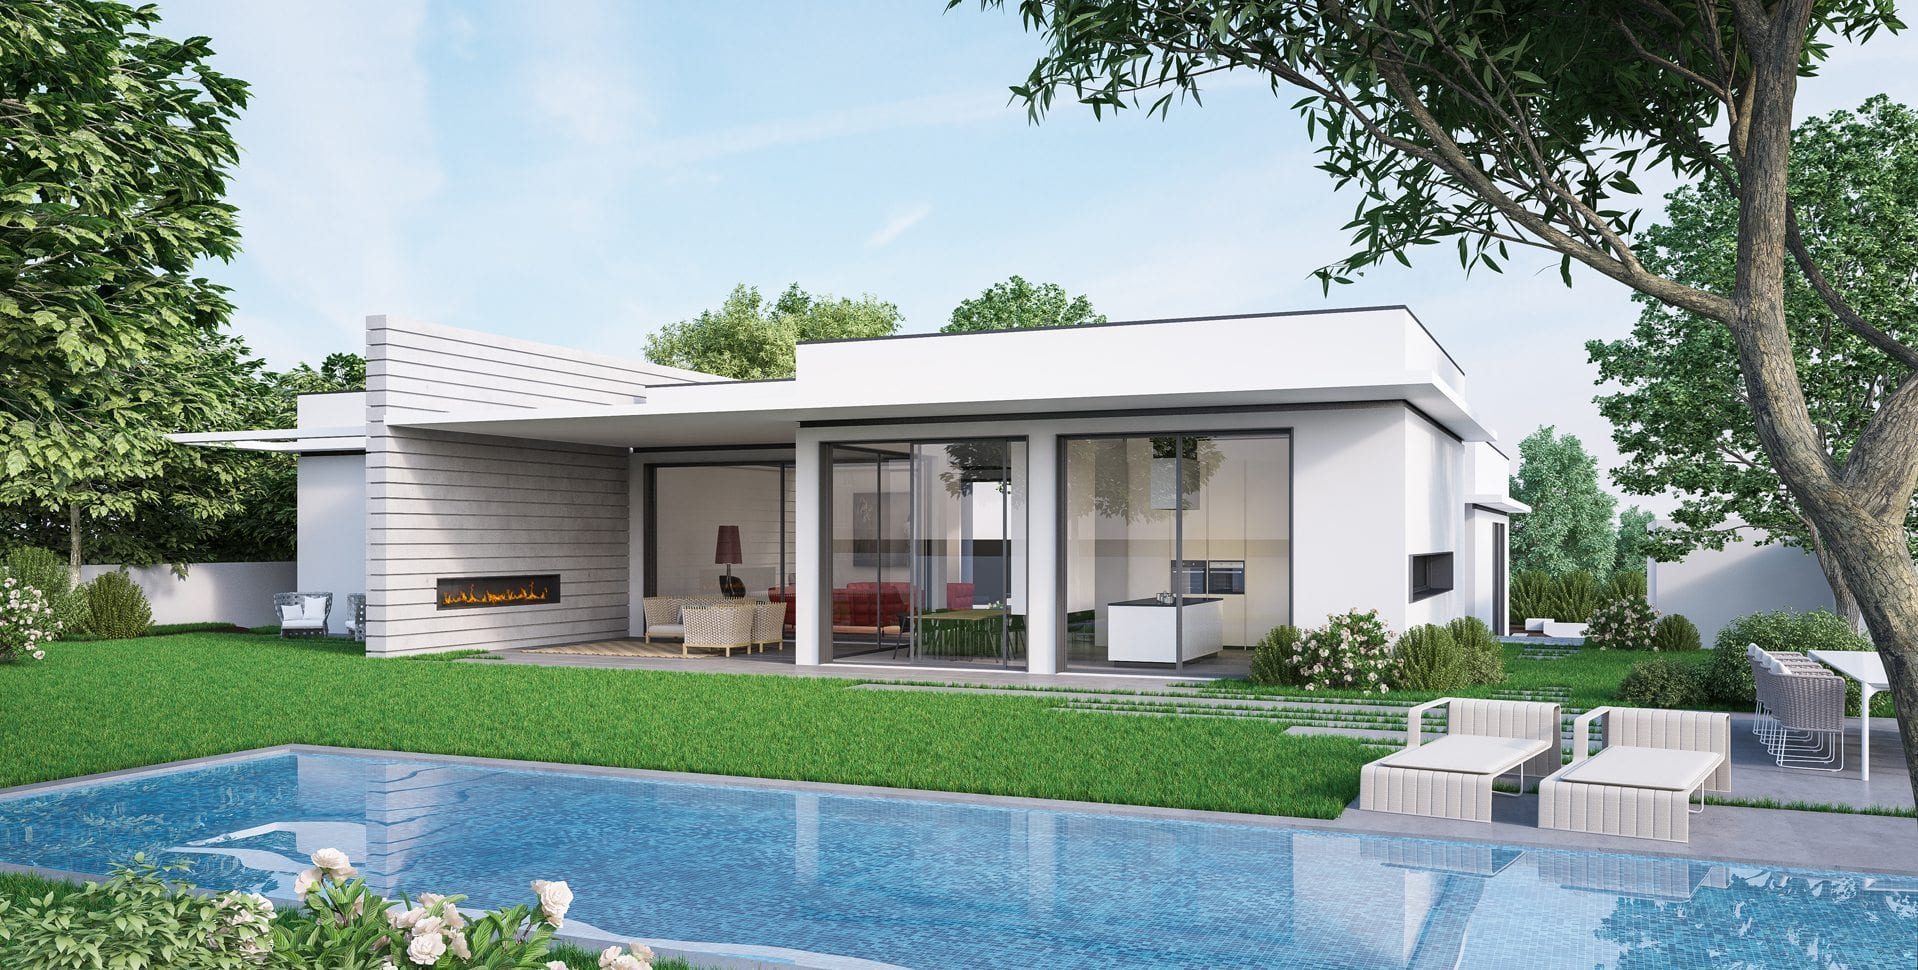 Maayan-Golan_Architectural-Visualization_exterior-visualization_private-residence_horizontal-lines-project_back-elevation-pool_architect-yulie-wollman_03